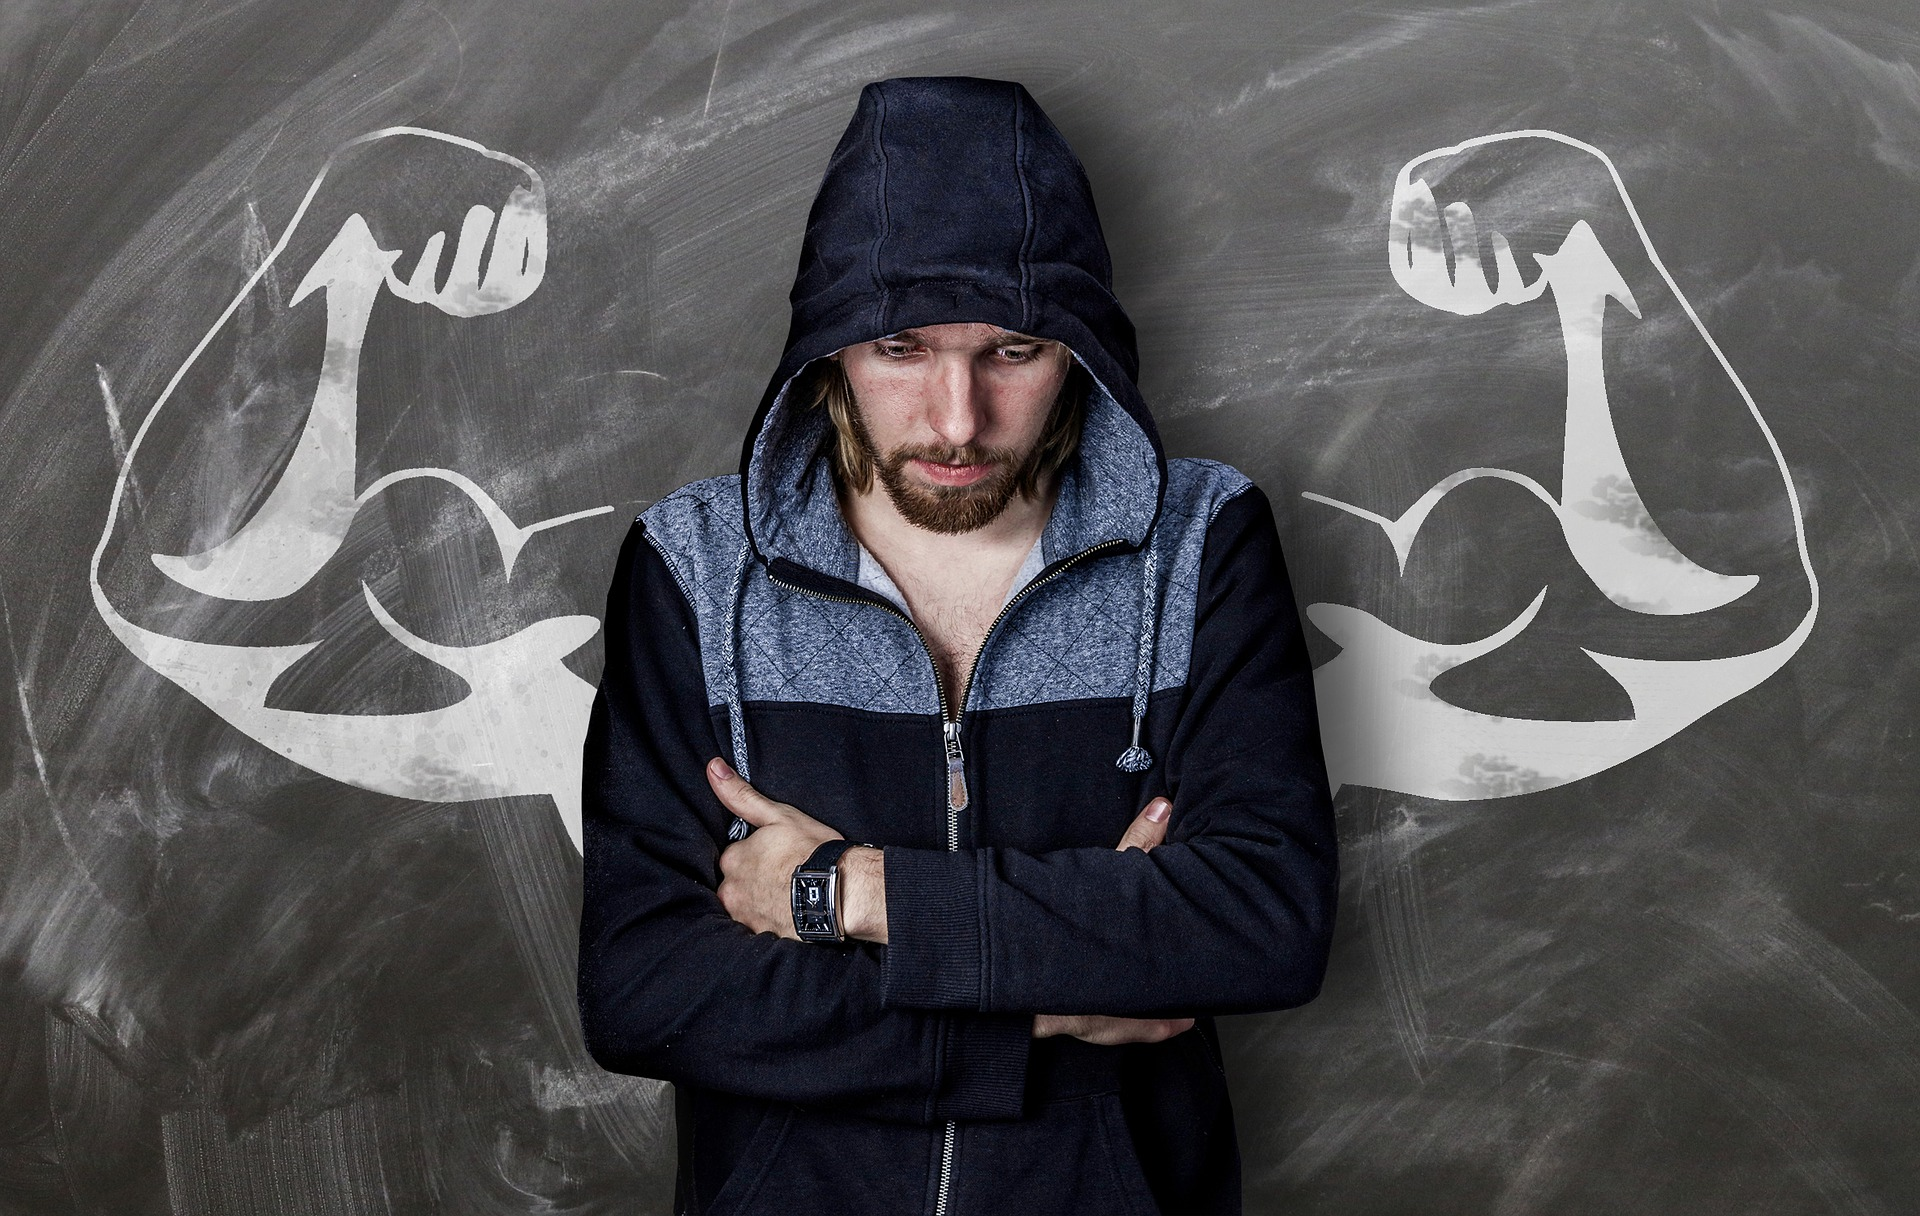 man standing in front of muscular logo